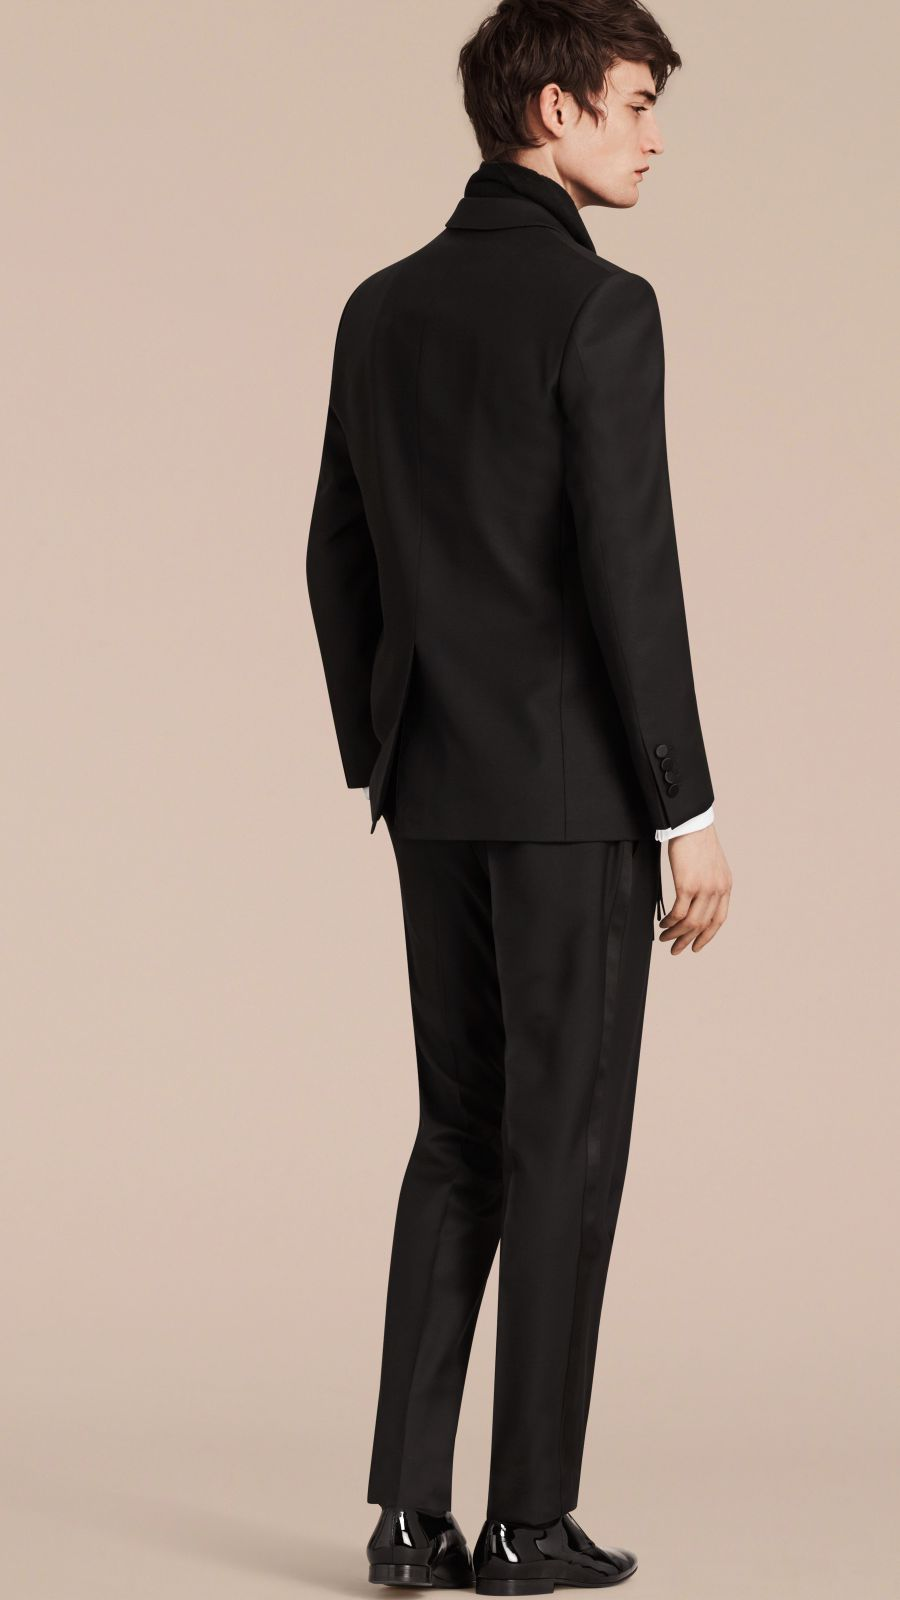 Black Modern Fit Wool Mohair Half-canvas Tuxedo - Image 3